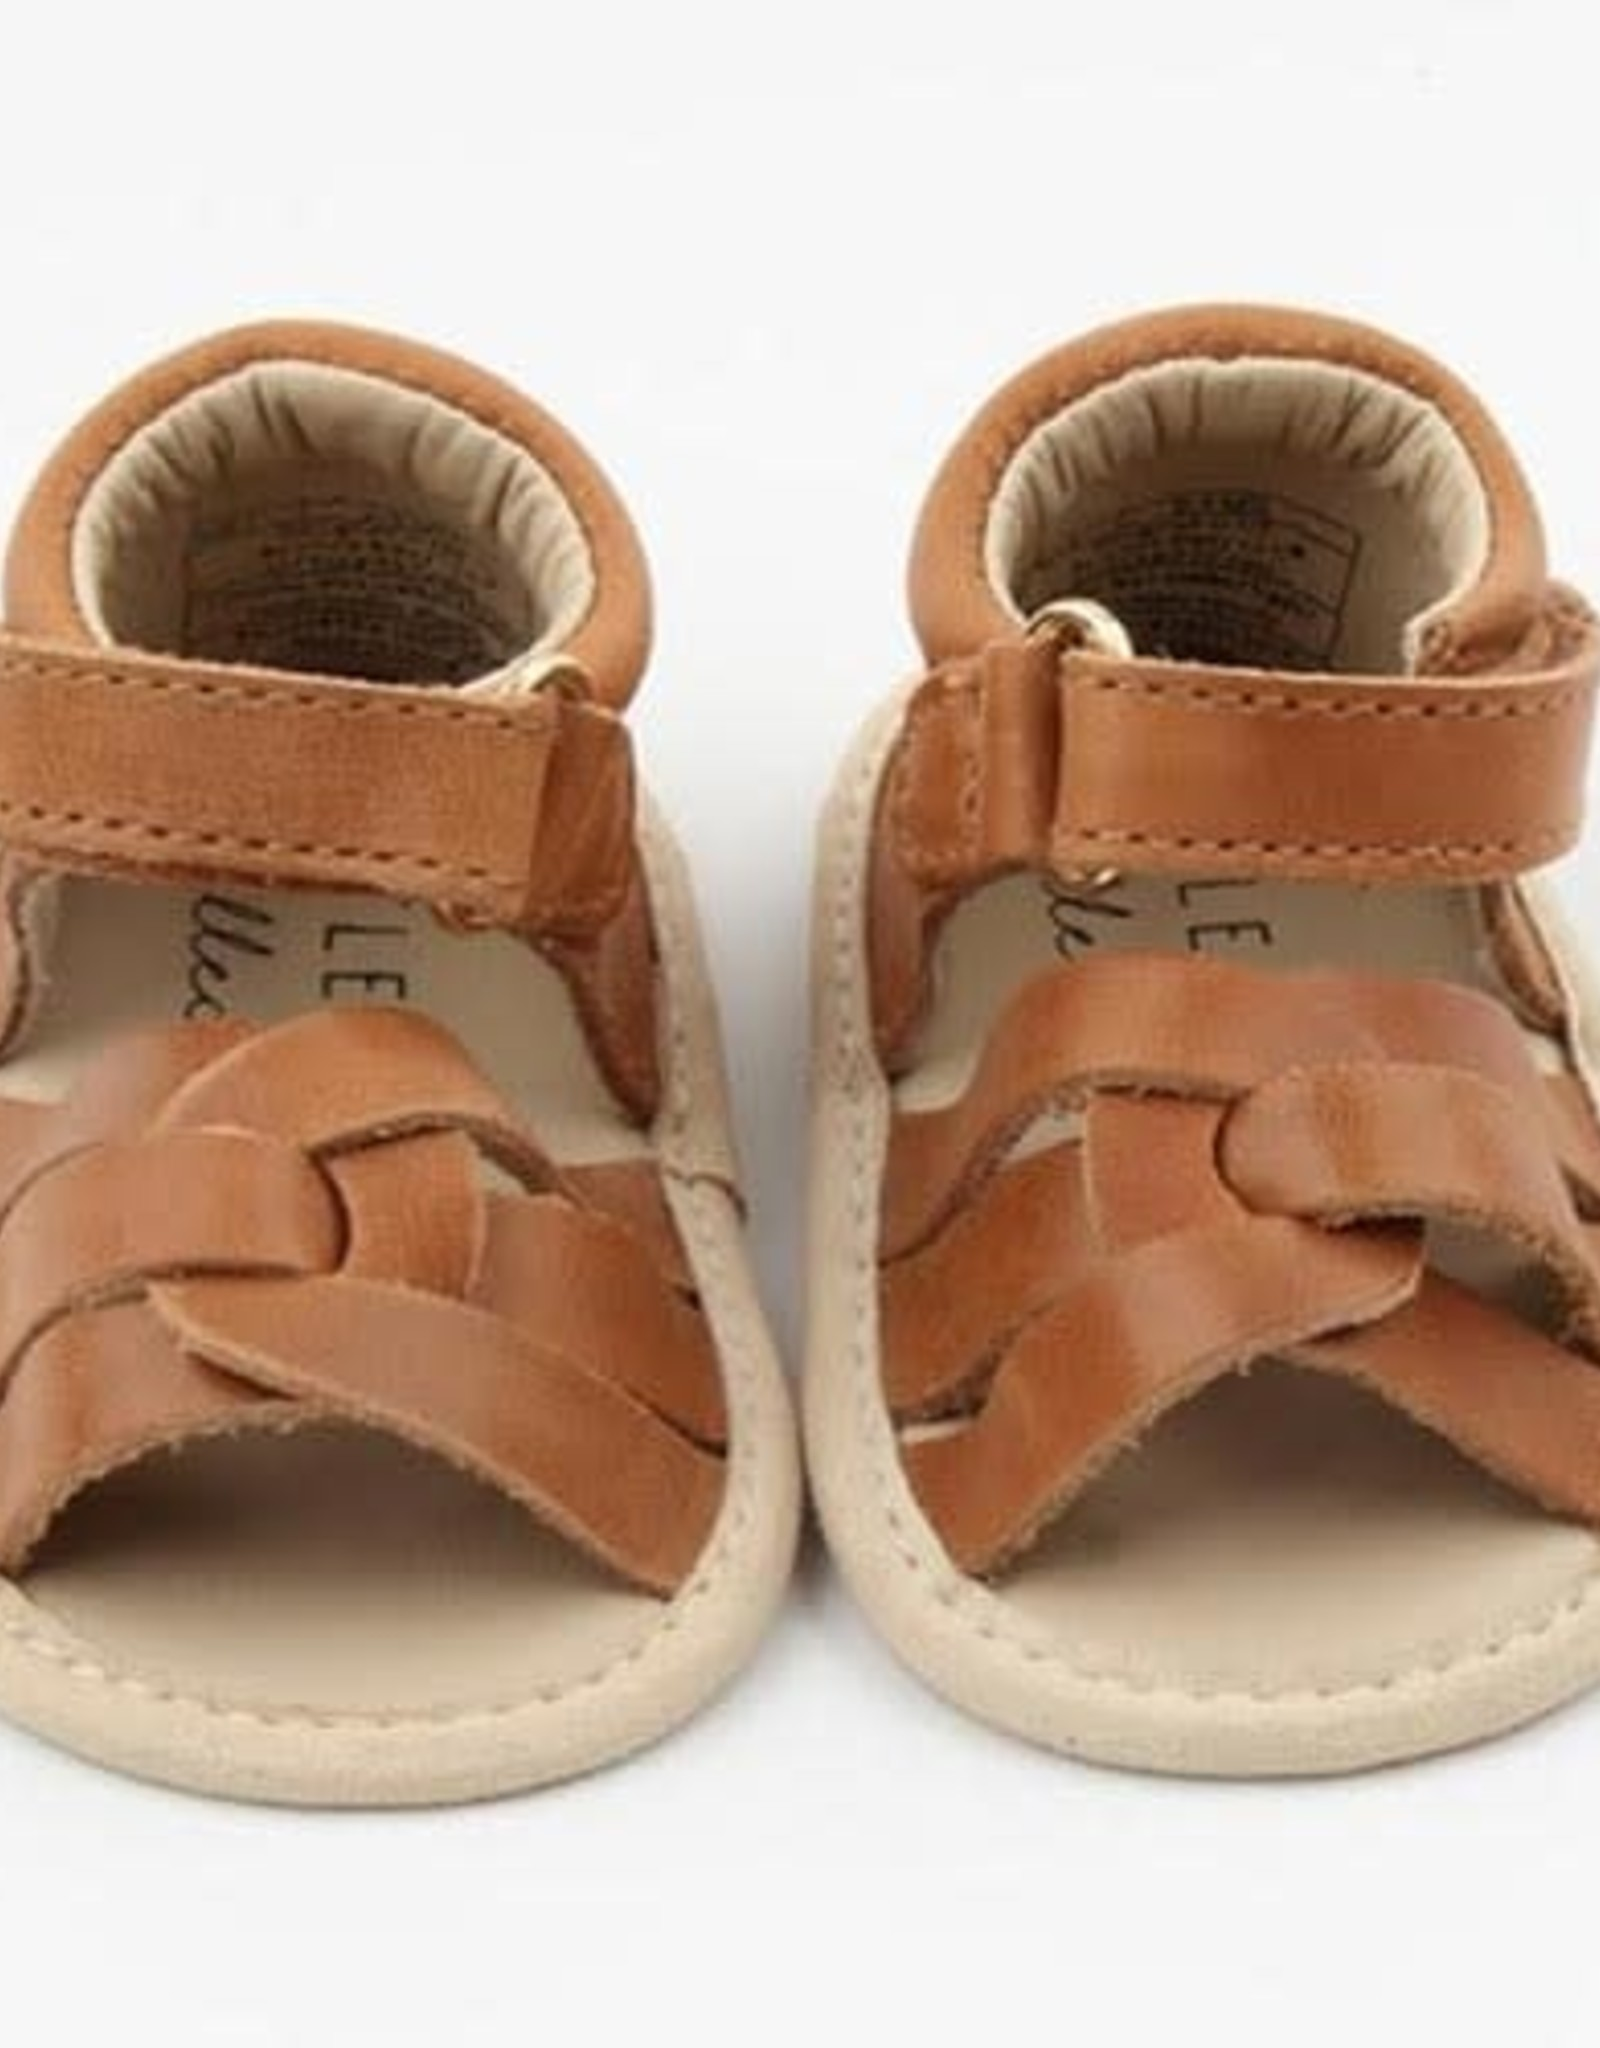 Little Bipsy Collection camden sandals- camel